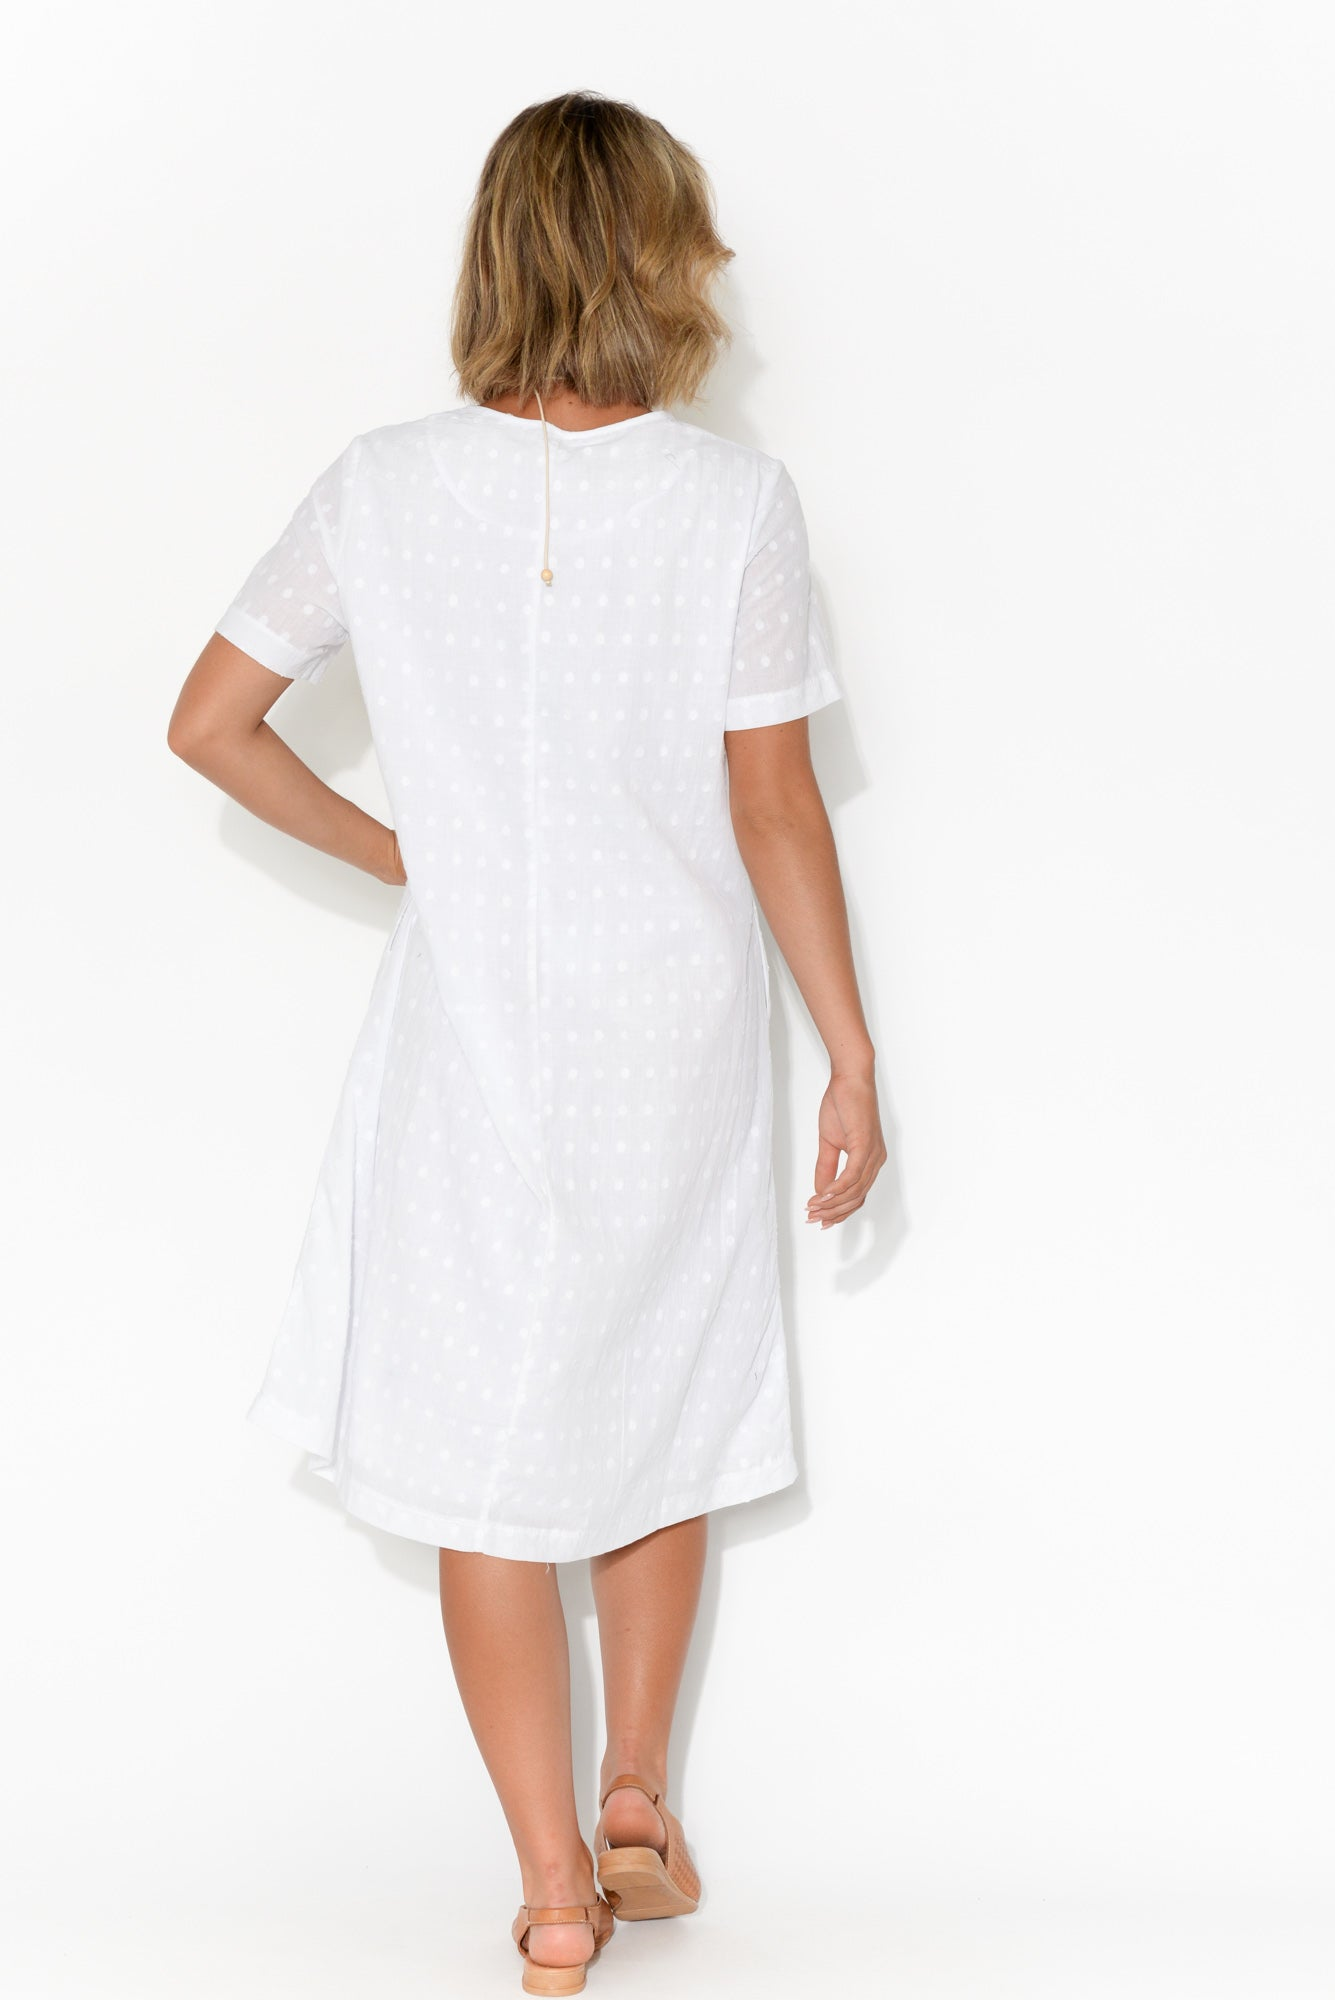 Amelie Textured White Cotton Dress